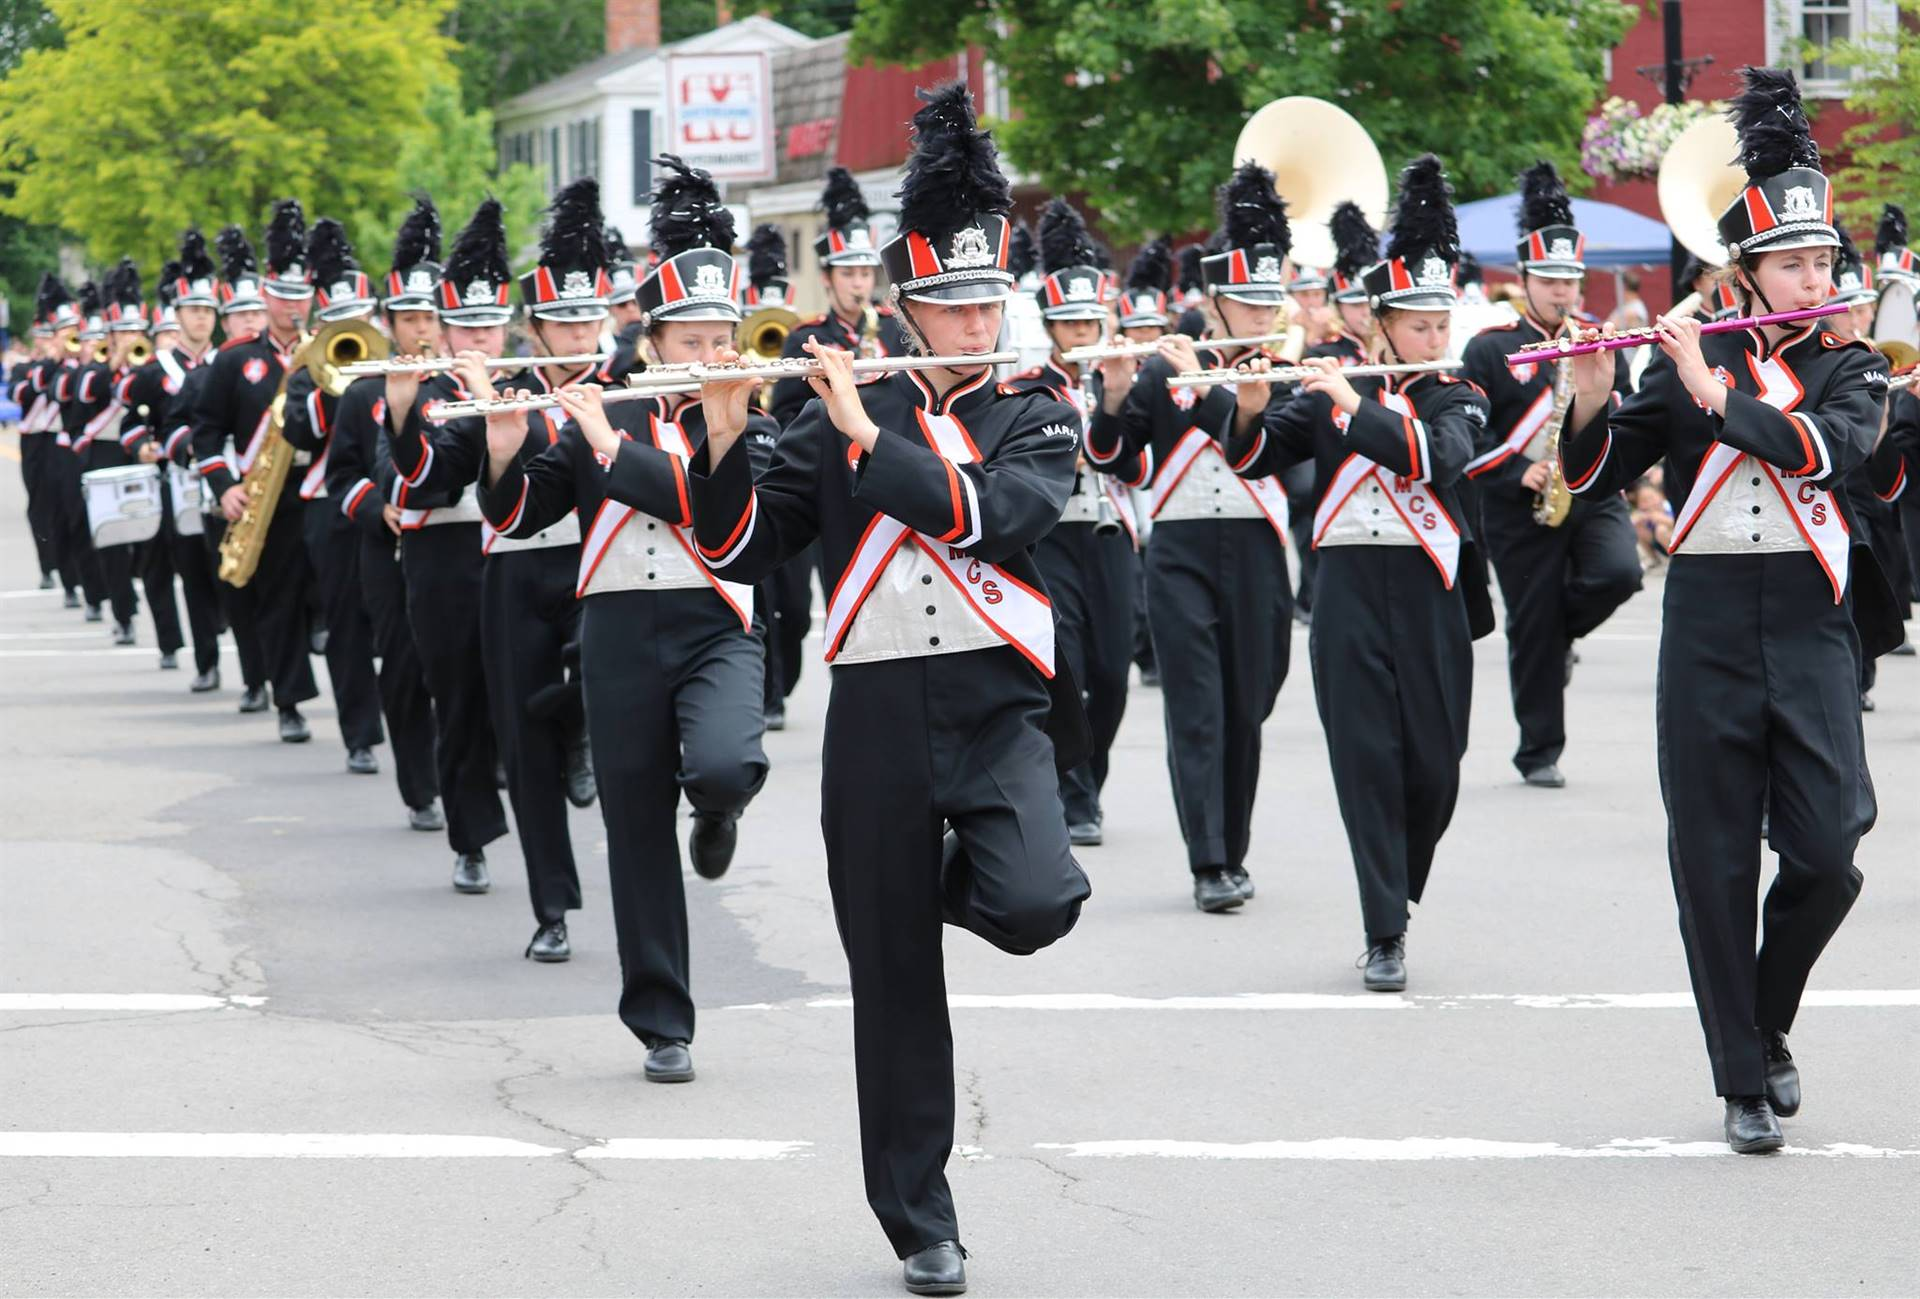 Sherburne Pageant of Bands 2018 Parade photo